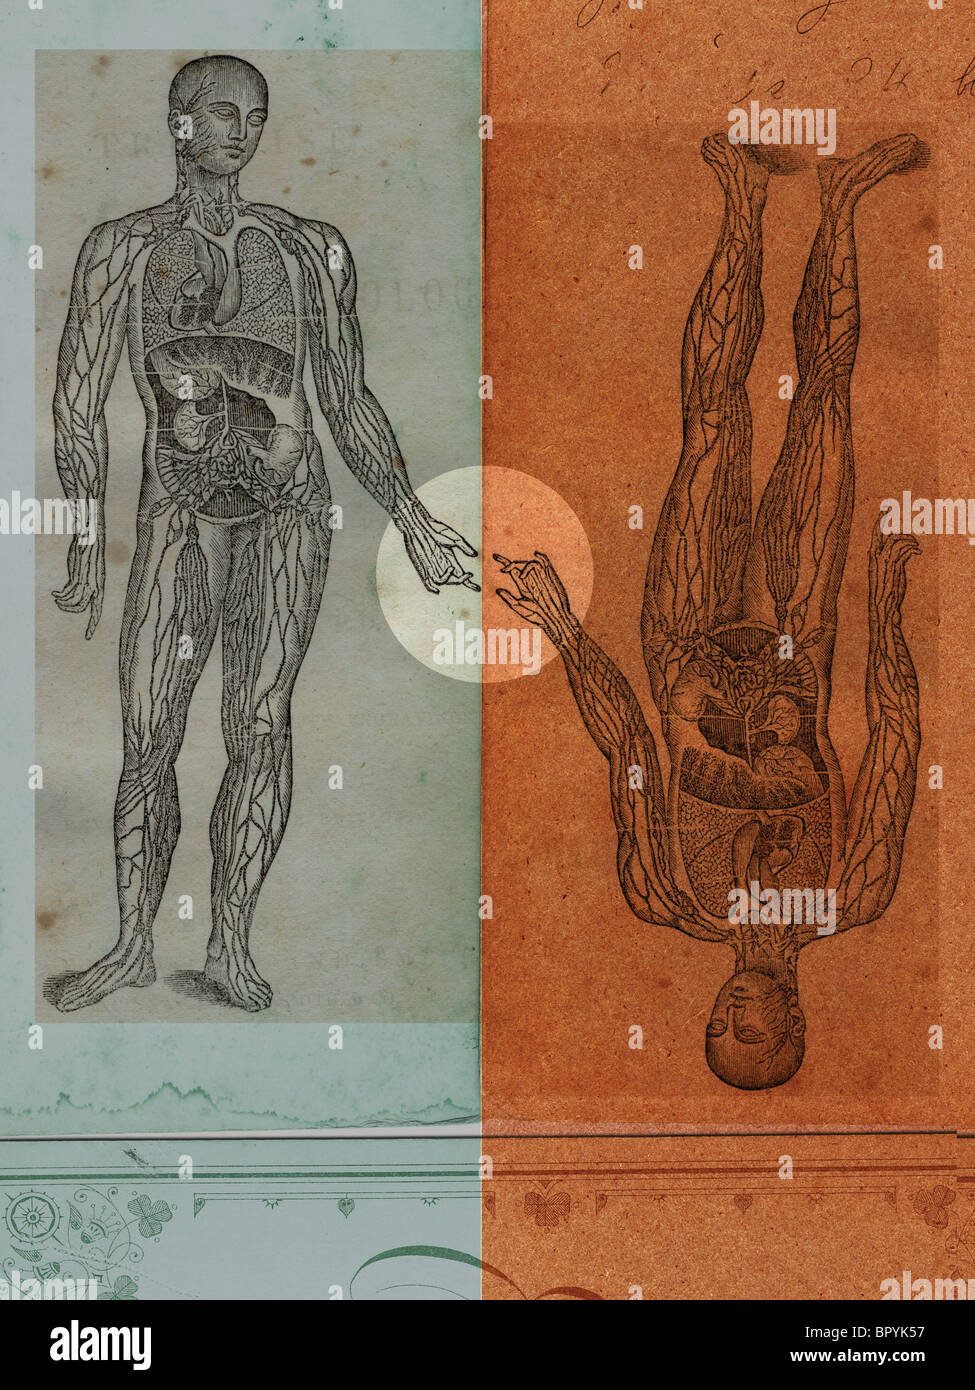 Medical illustrations of a mans body showing circulatory system and internal organs - Stock Image